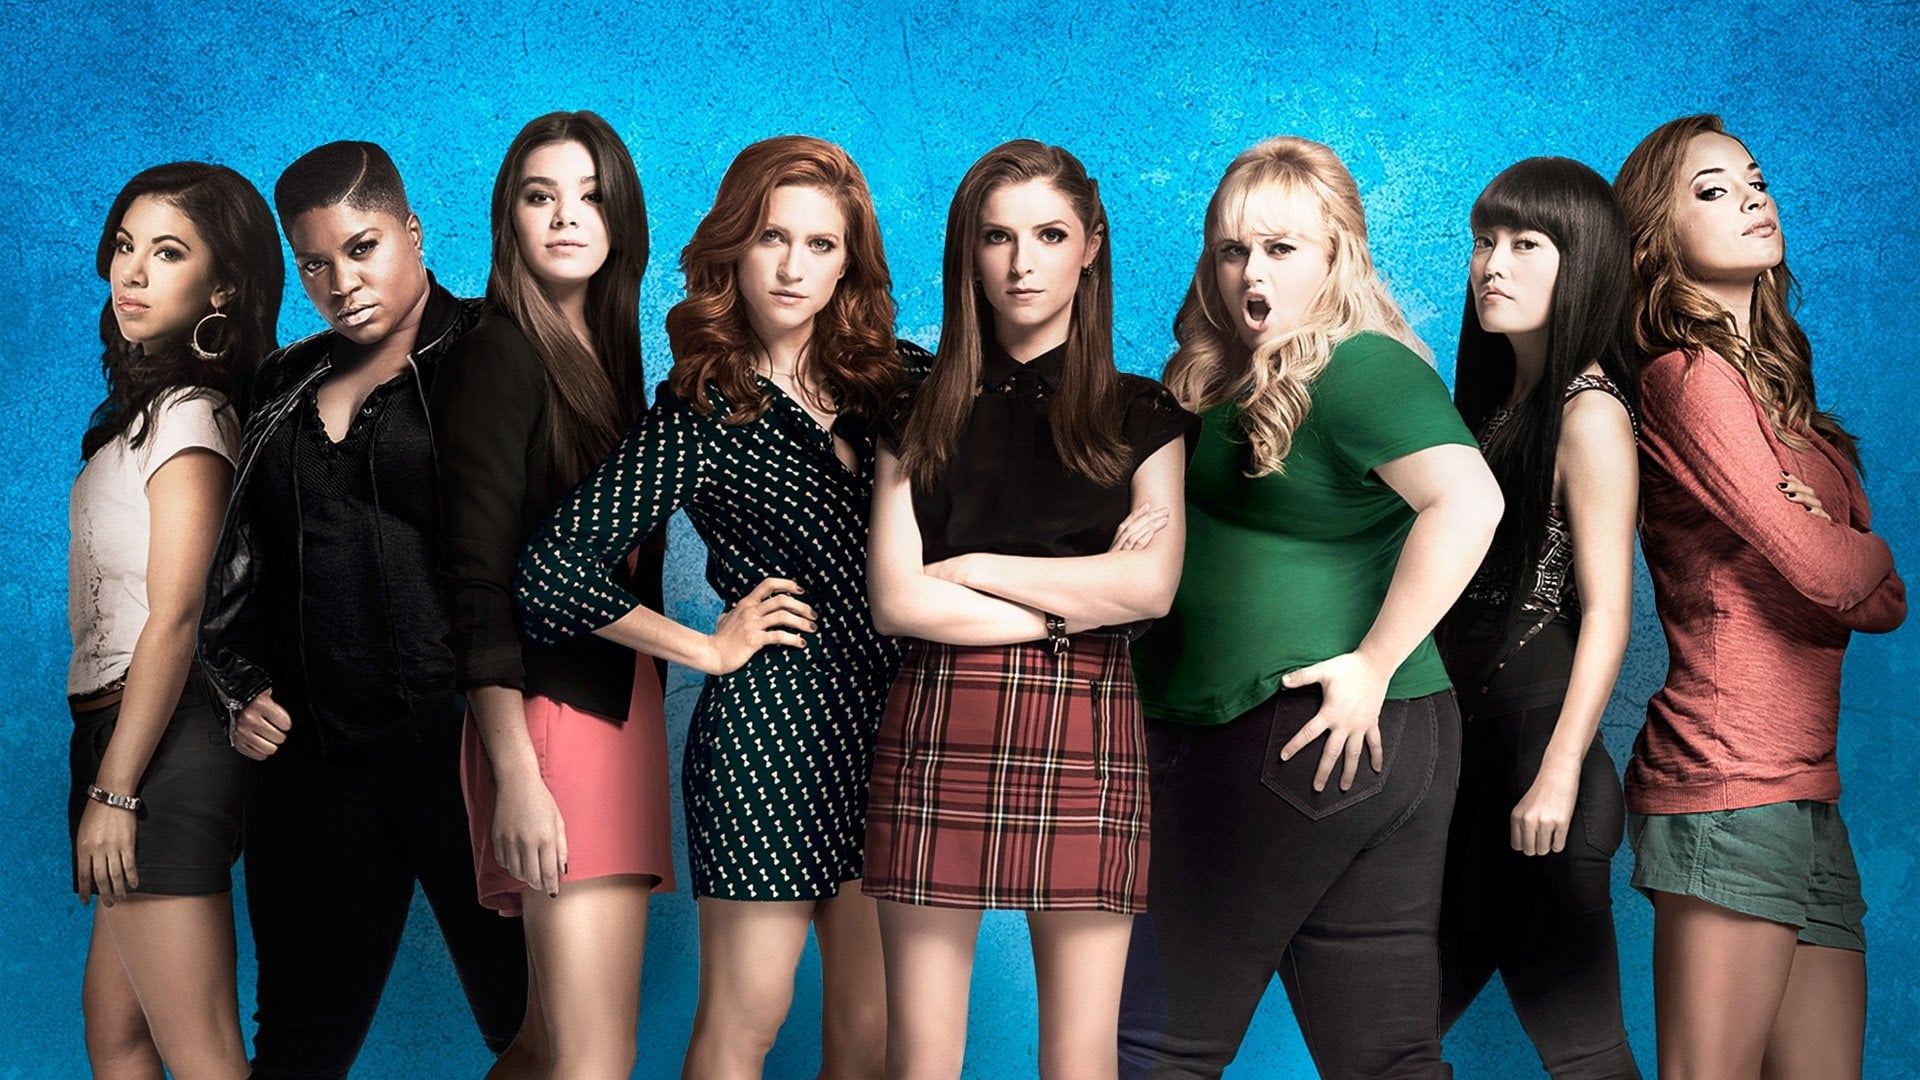 Pitch Perfect 2 Movie Streaming Online Watch on Google Play, Youtube, iTunes